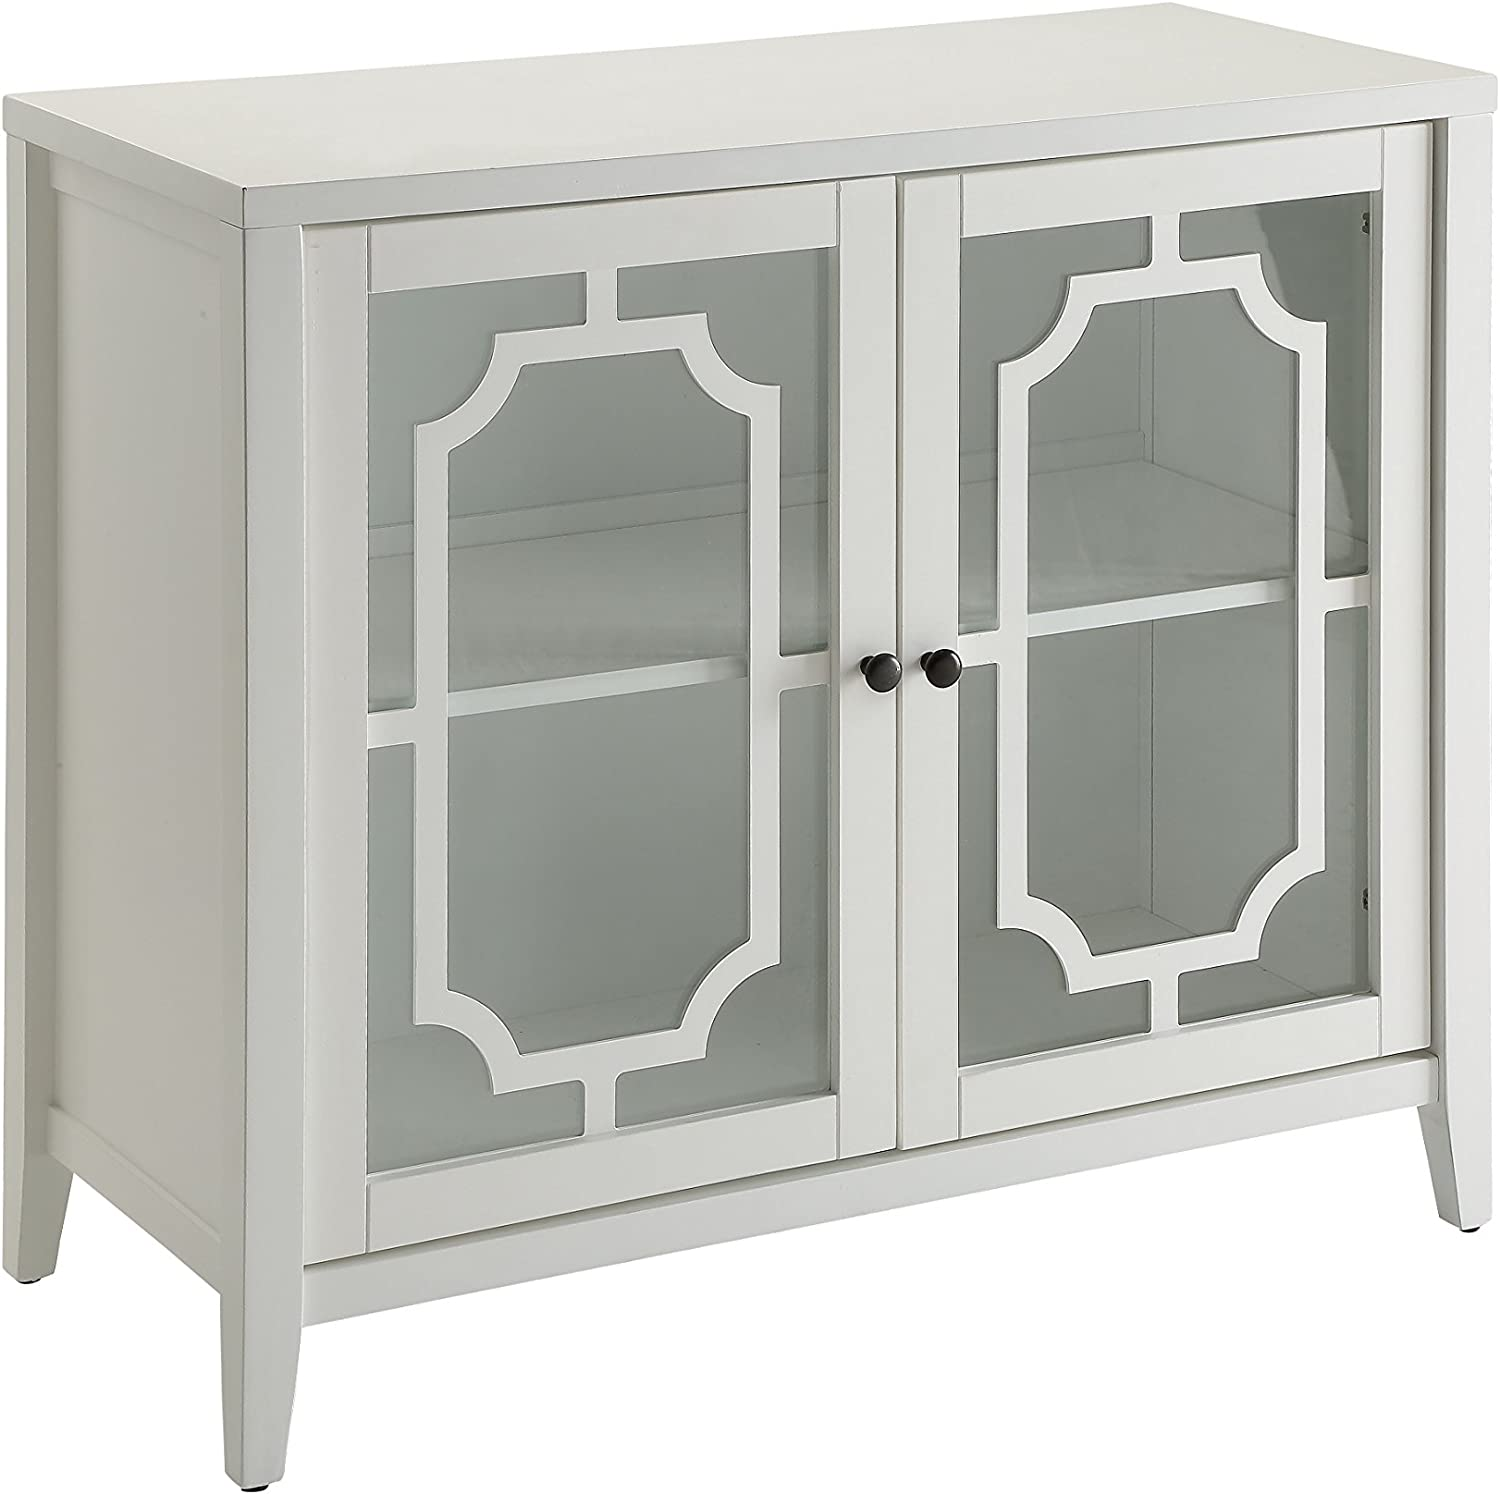 ACME Ceara Console Table - 97384 - White